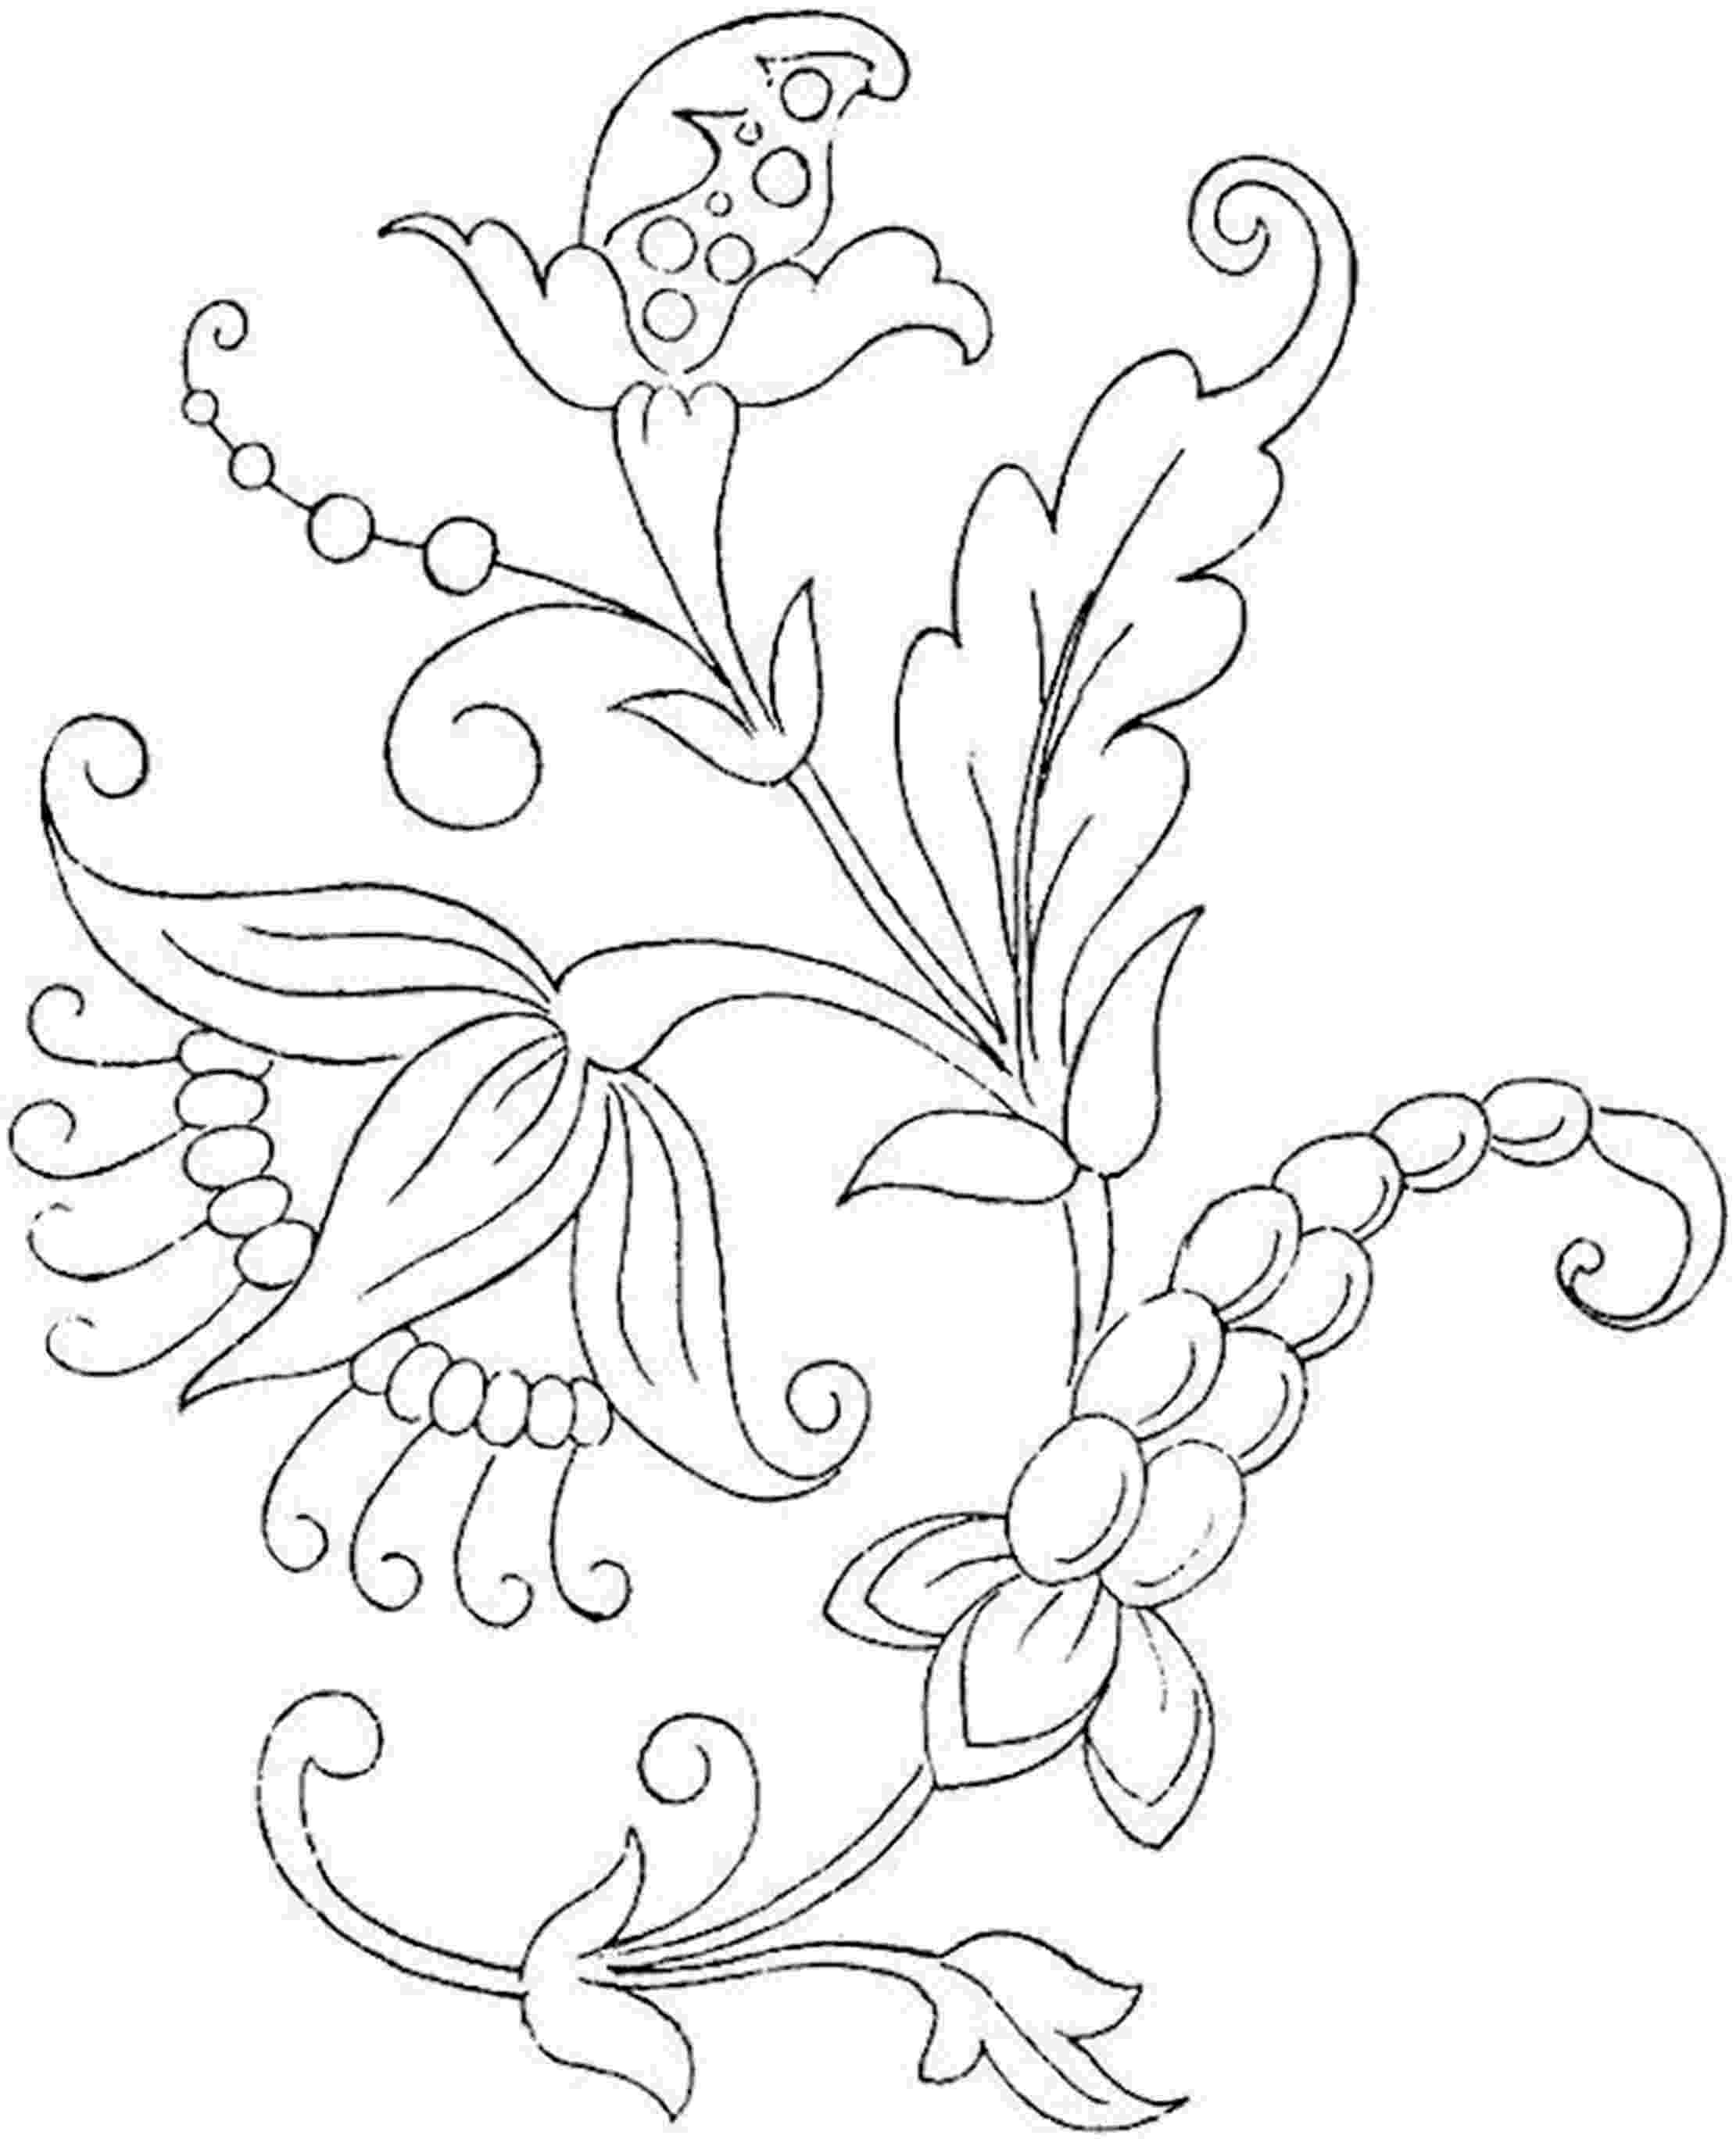 coloring flower pictures free printable flower coloring pages for kids best coloring flower pictures 1 4